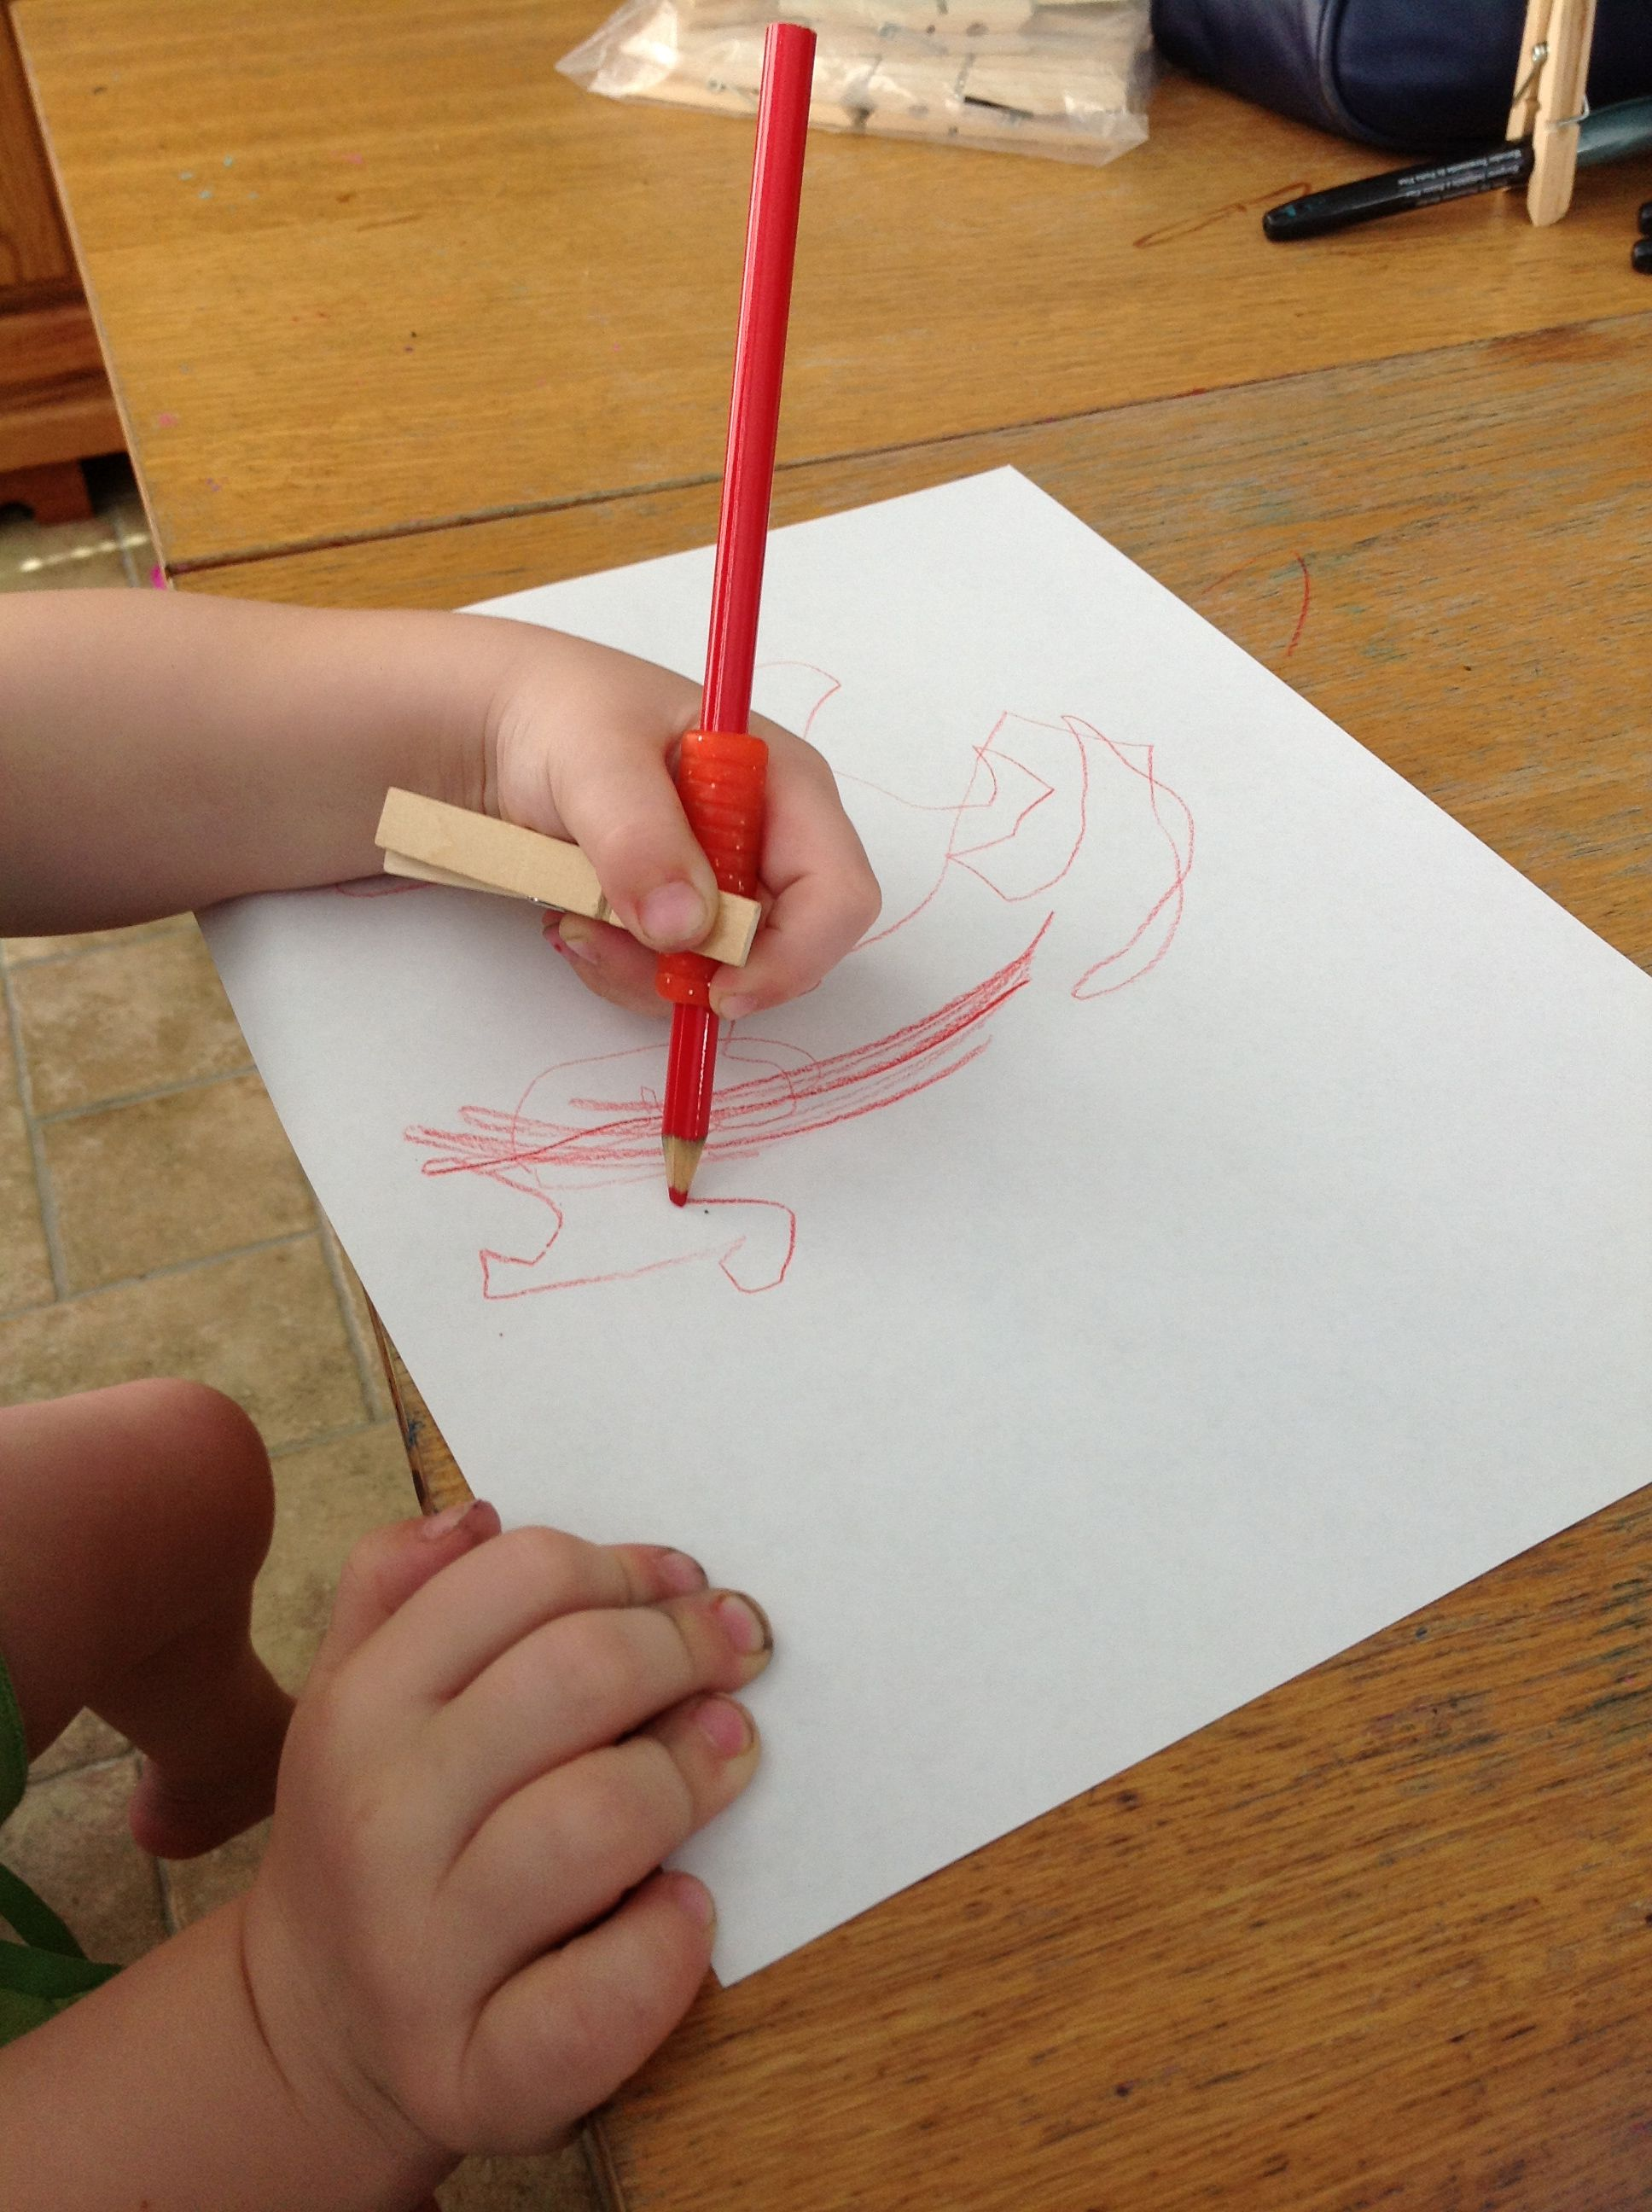 Clothespin Pencil Grip Using A Rubber Pencil Grip To